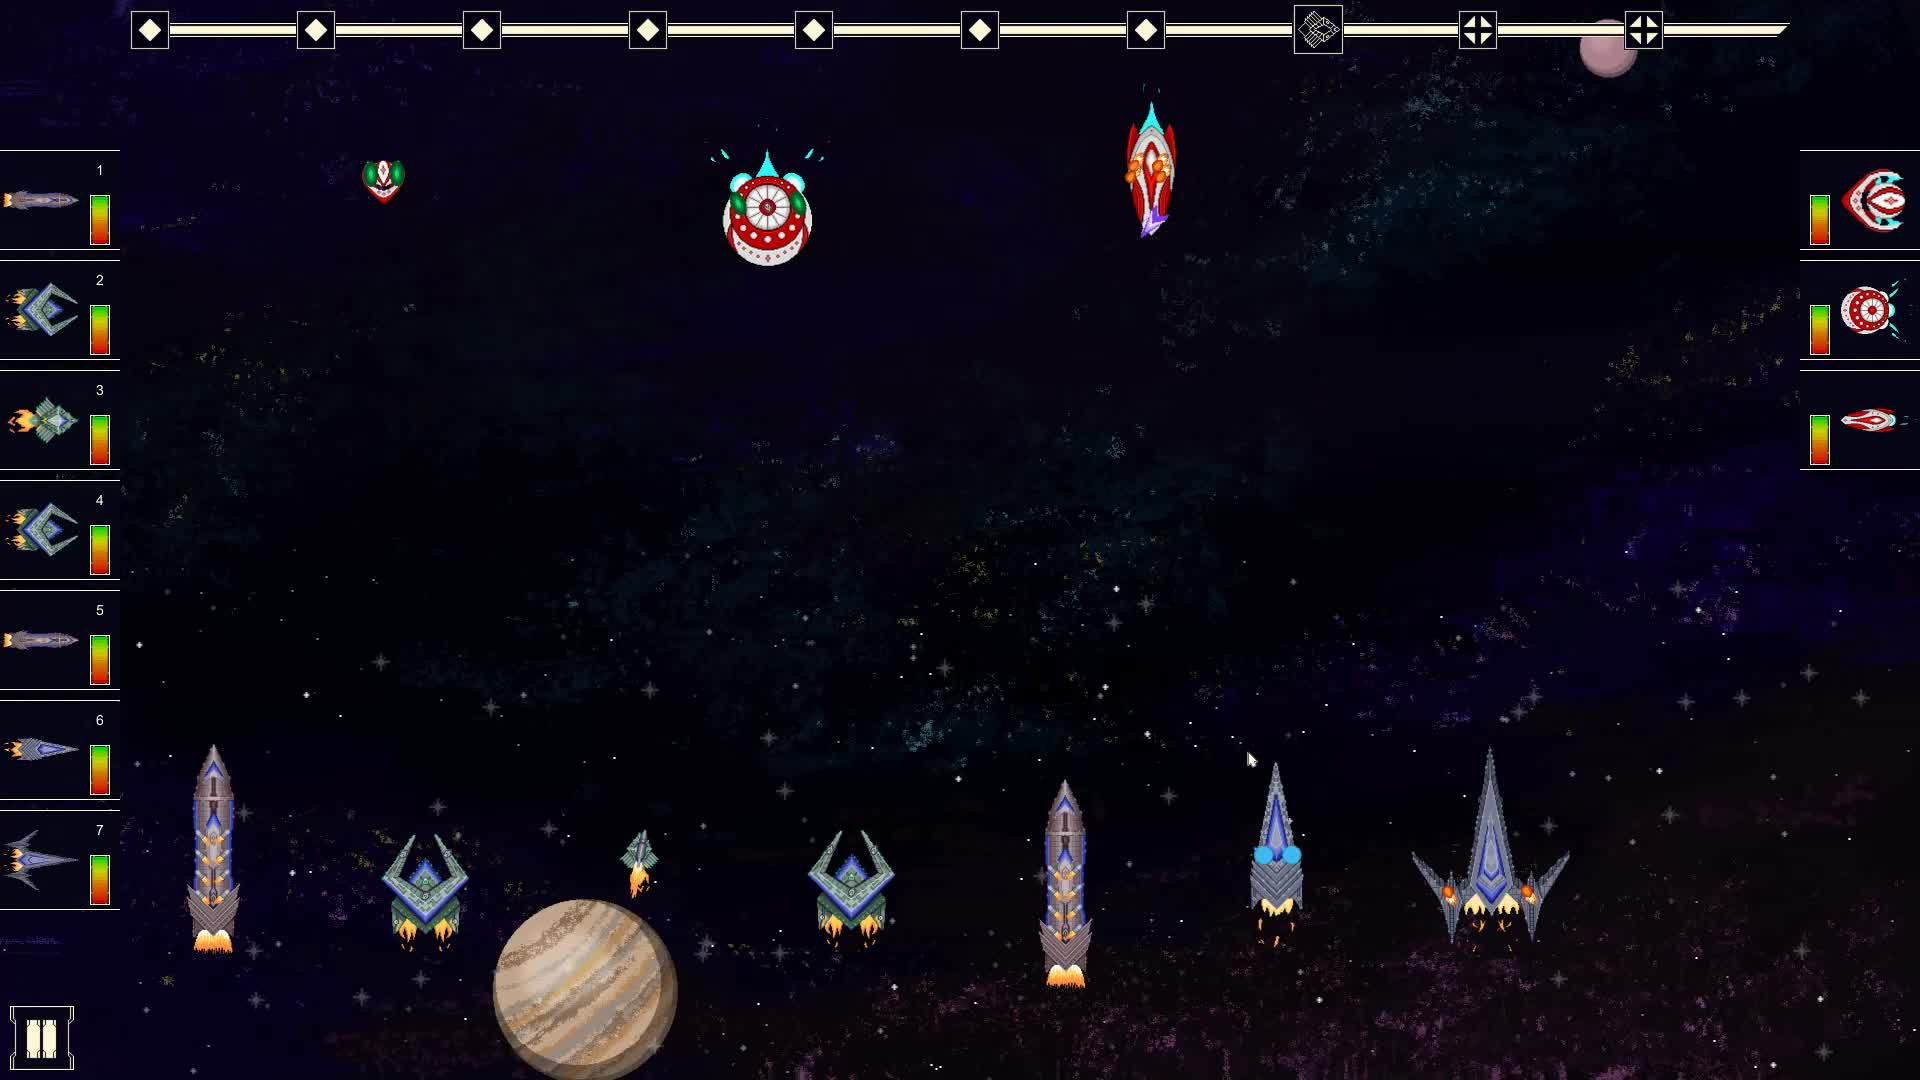 clicker, gamedev, incremental game, indiedev, Lazy Galaxy: more ships GIFs